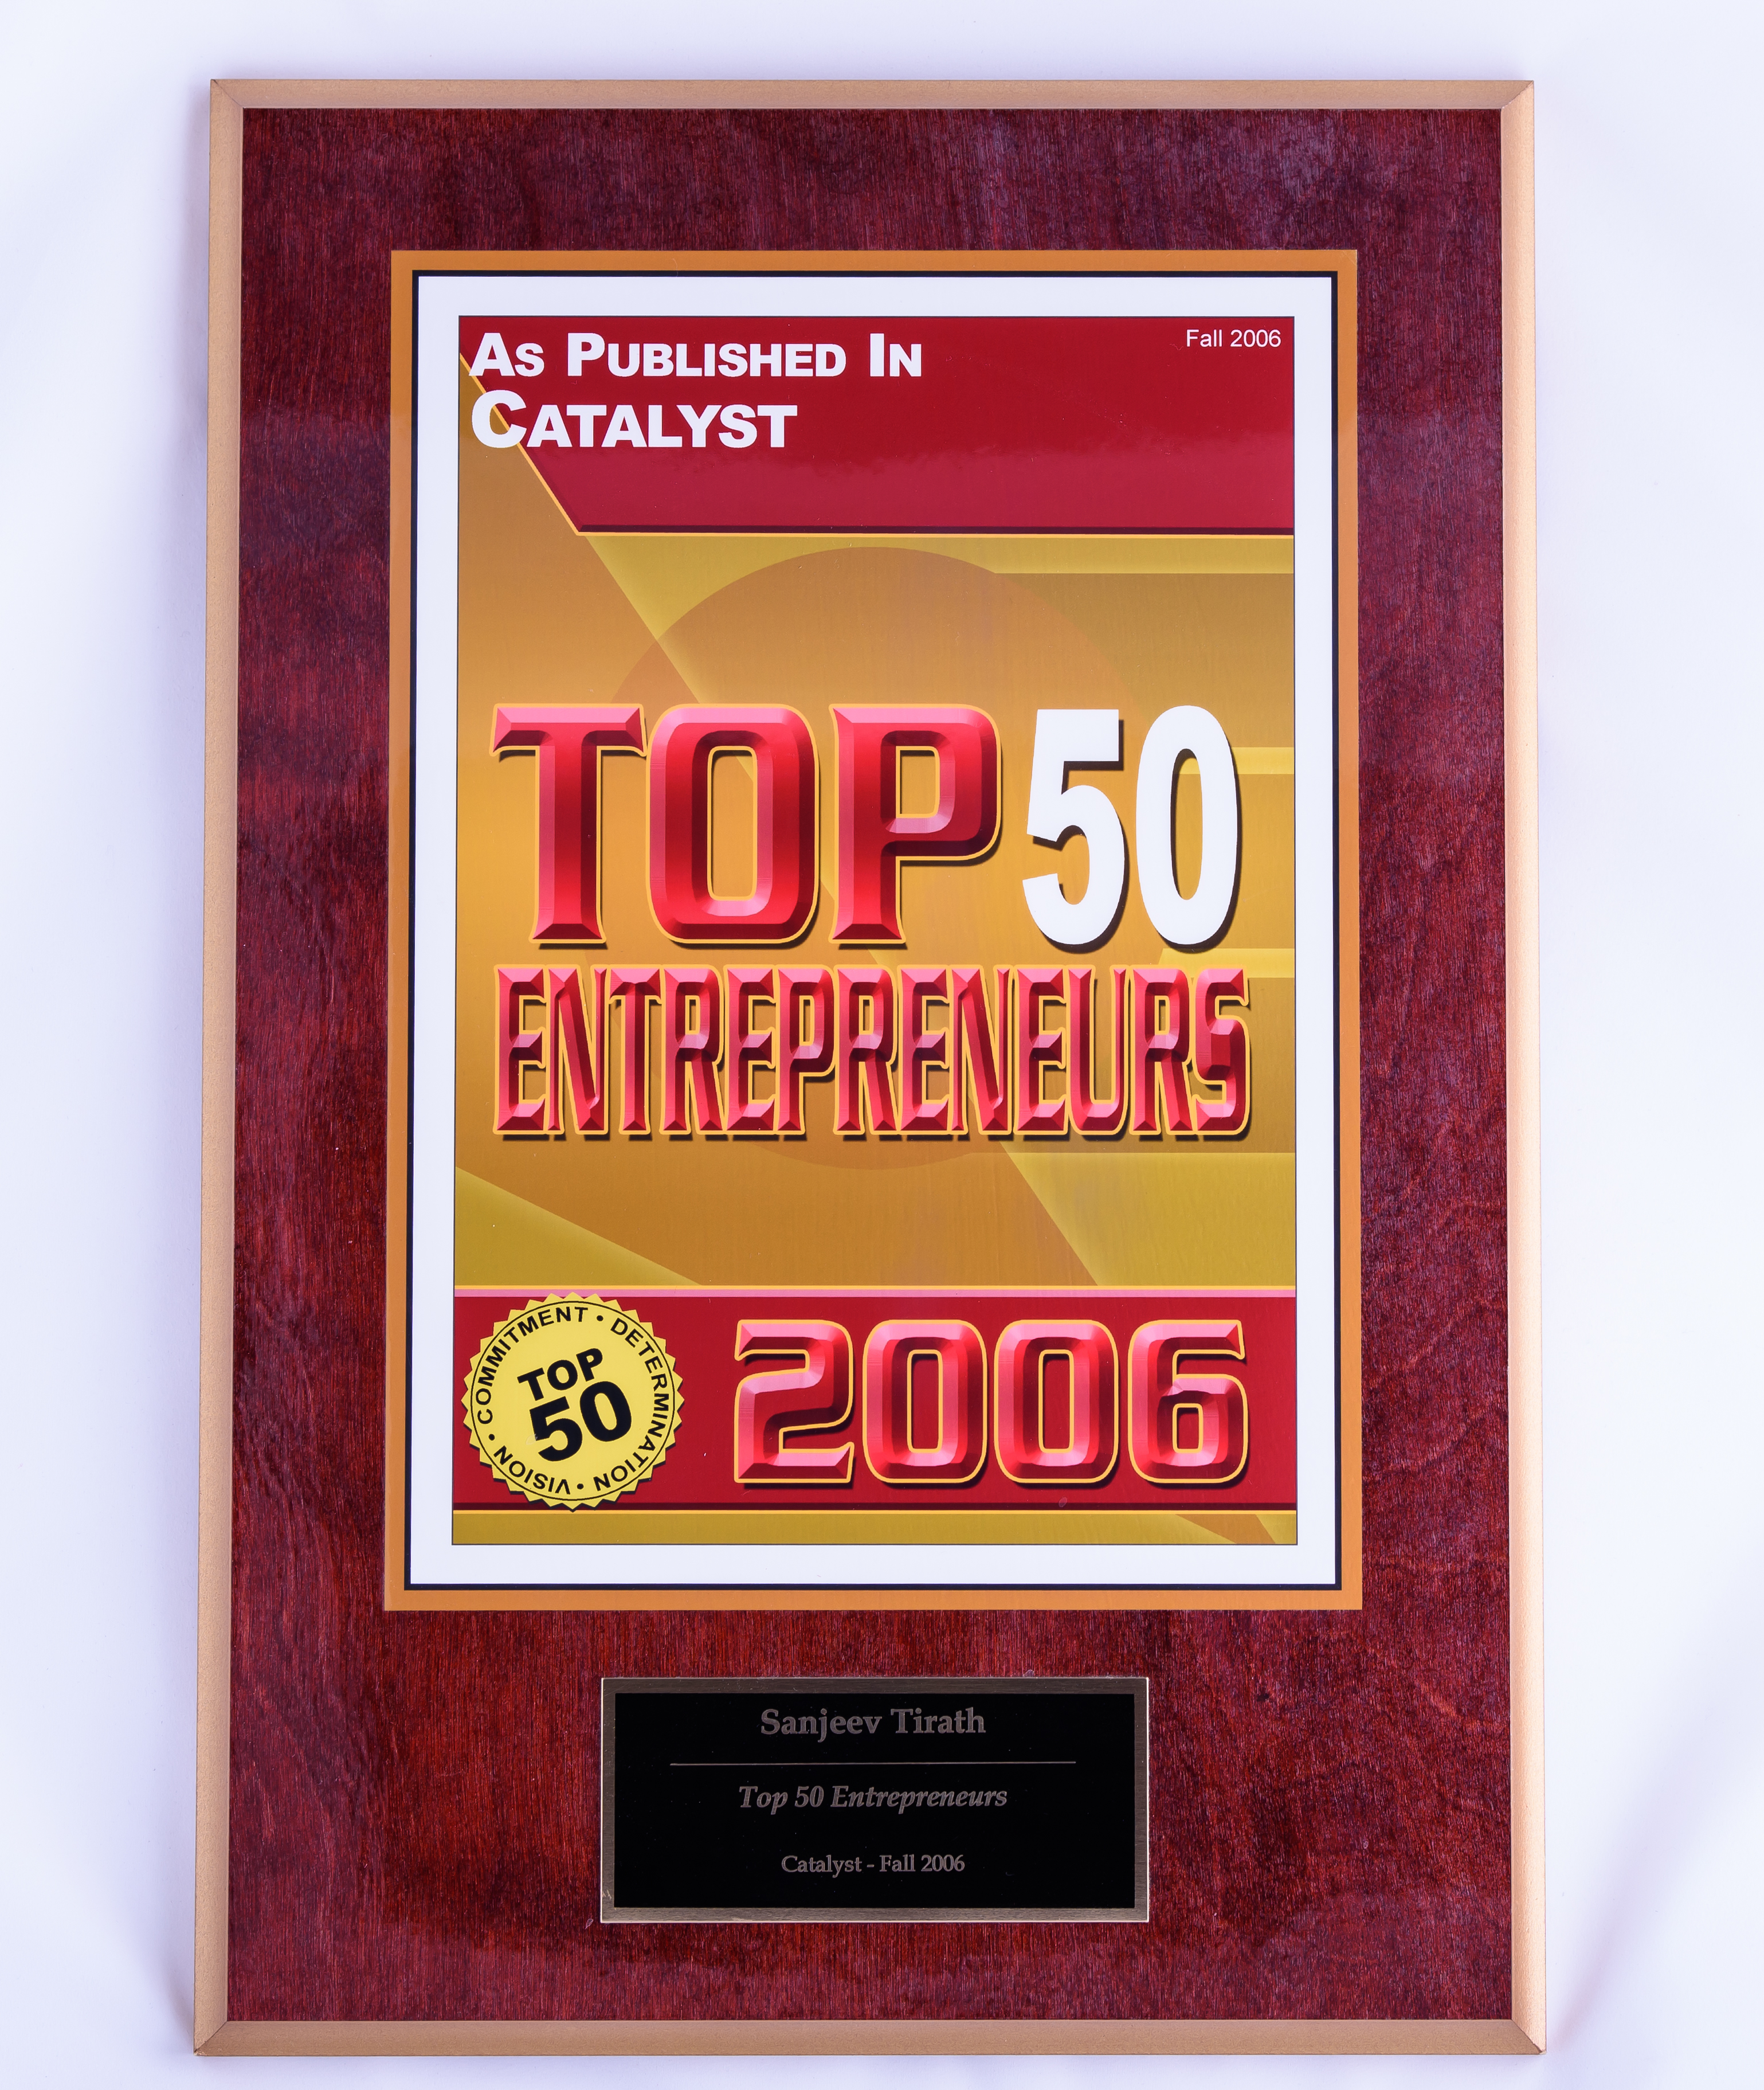 2006 Top 50 Entrepreneurs Catalyst